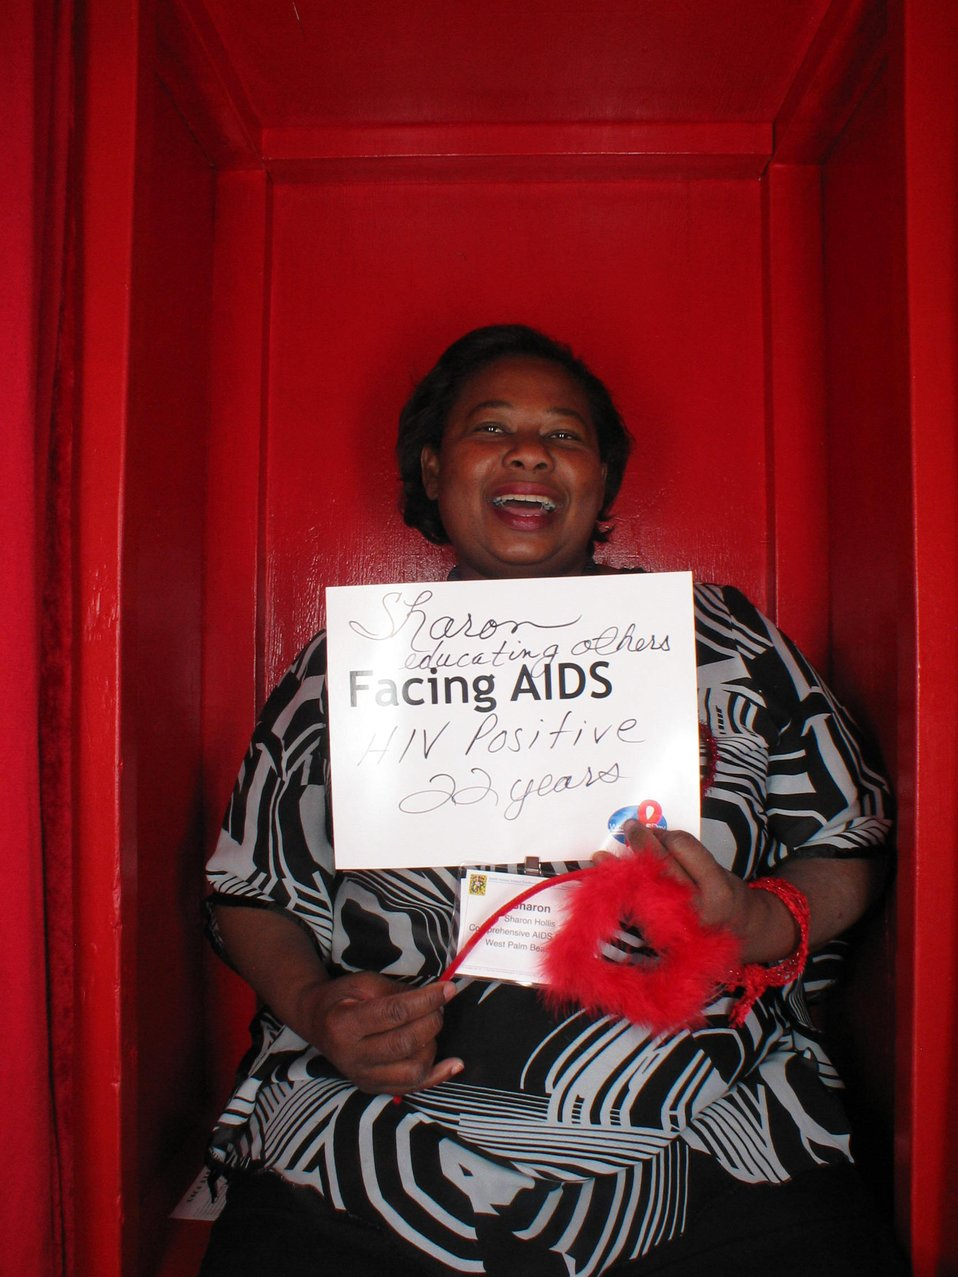 Facing AIDS HIV positive 22 years.